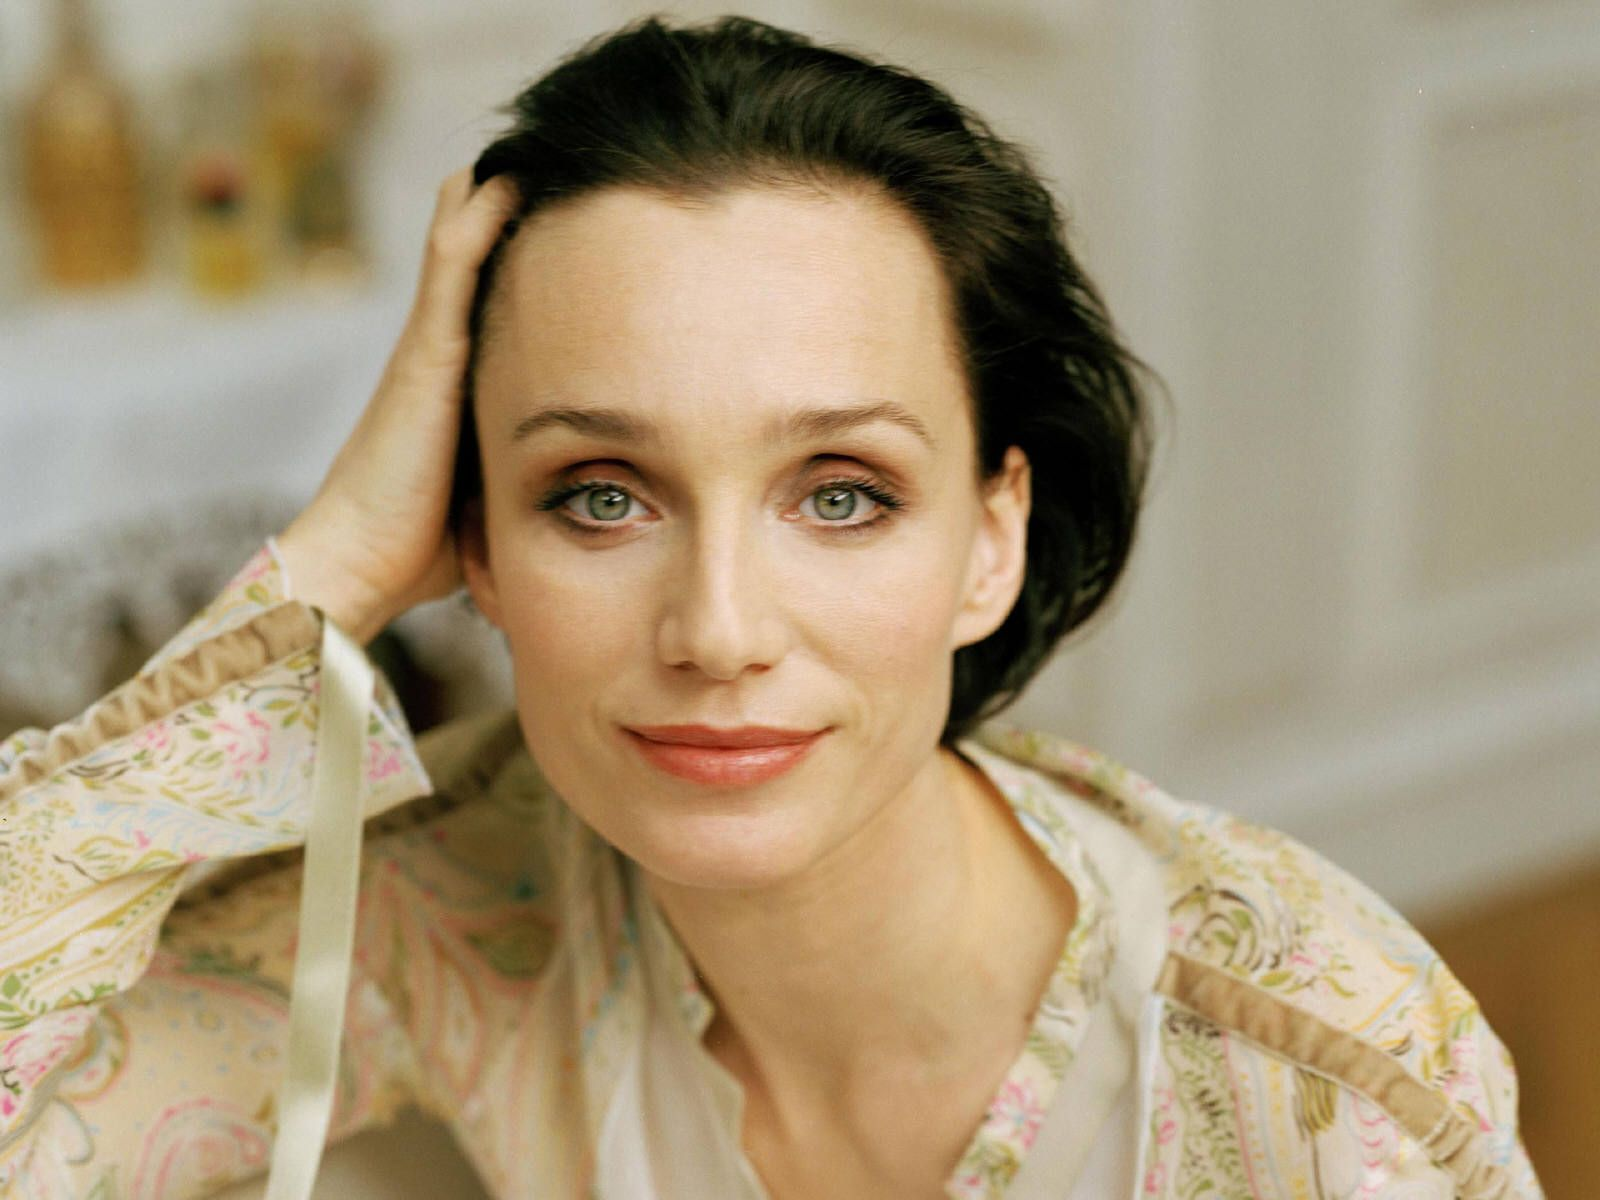 kristin scott thomas computer wallpaper photos 58222